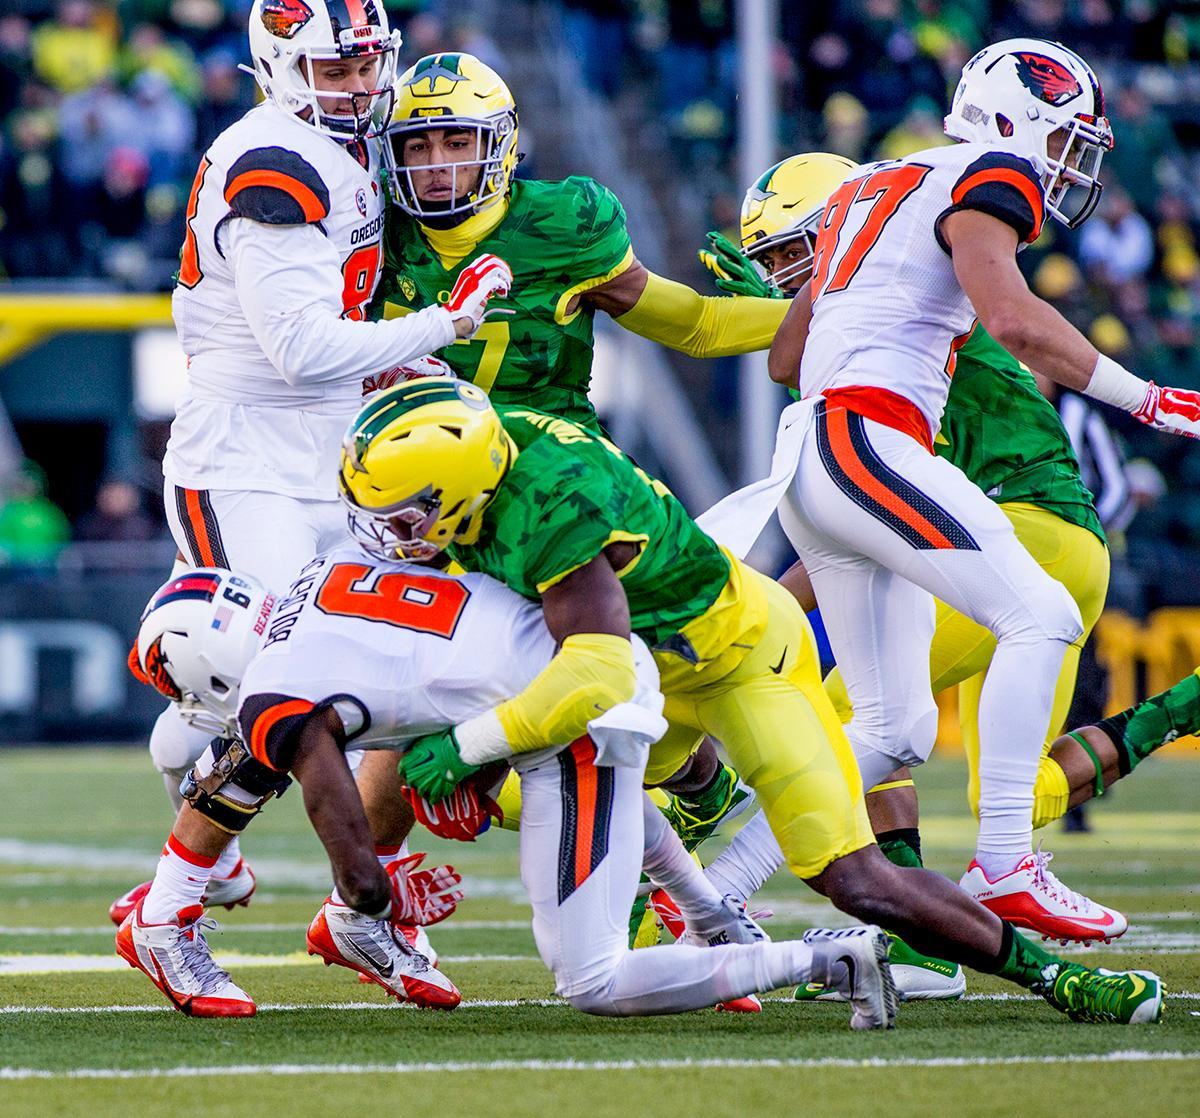 Oregon Ducks defense tackles Oregon State Beavers Victor Bolden (#6)  in the Civil War game in Autzen Stadium. At the half the Ducks led the Beavers 31 - 7. Photo by Katie Pietzold, Oregon News Lab